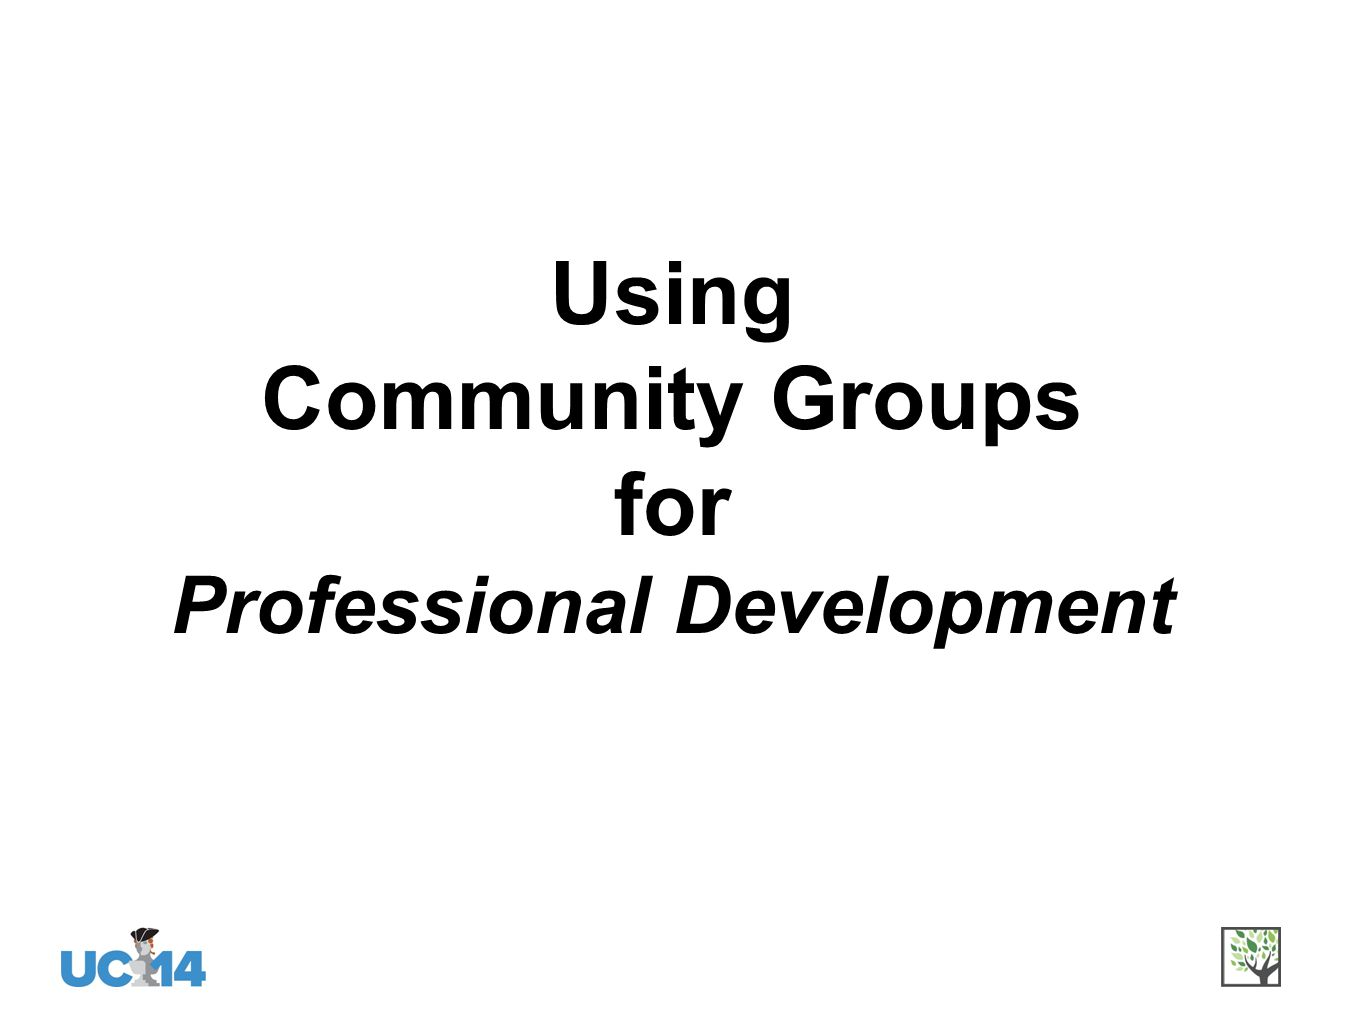 Using Community Groups for Professional Development